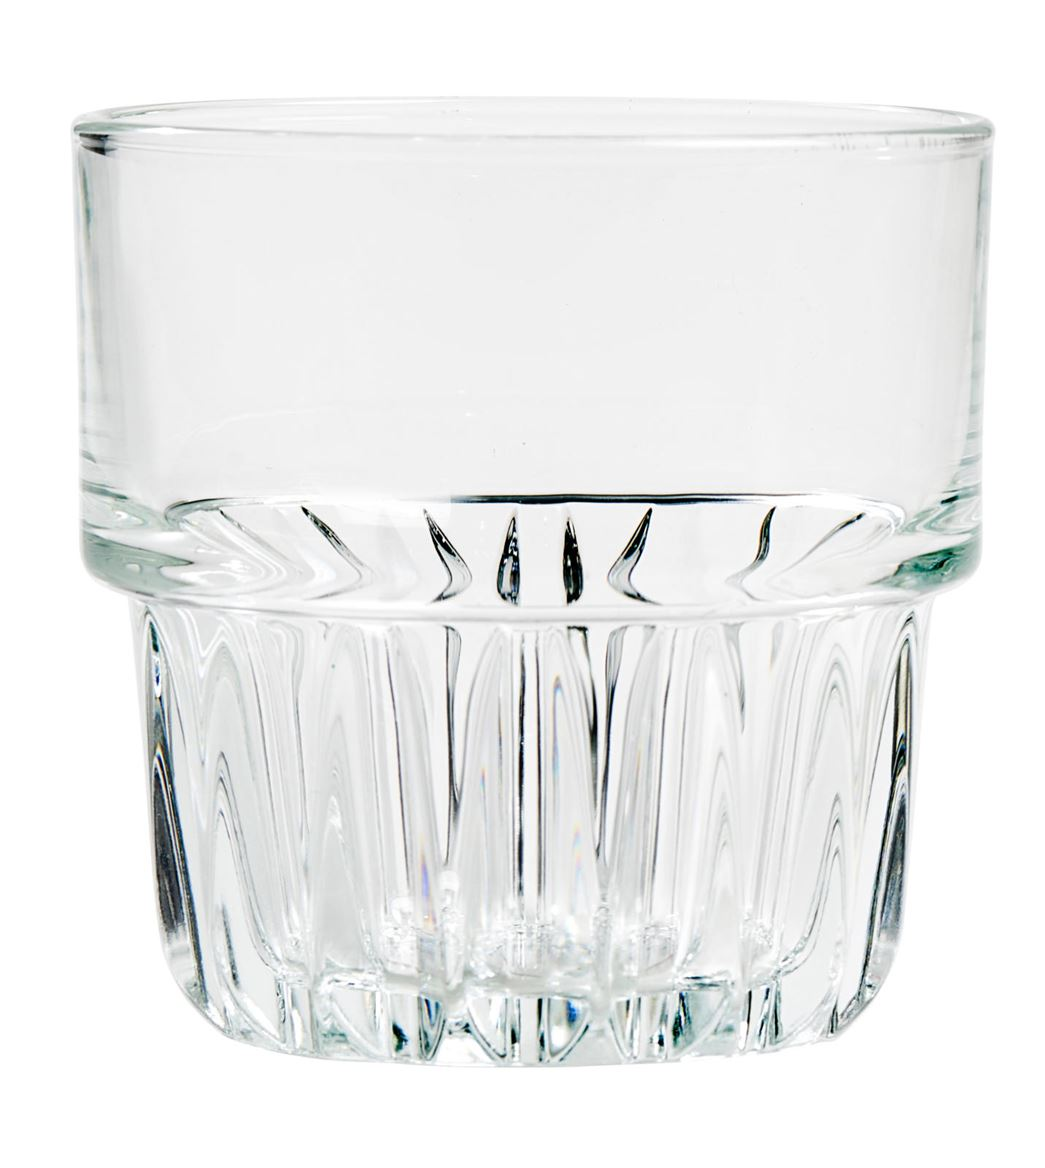 EVEREST Rocks Glas Transparent H 8.5 cm; Ø 8.4 cm_everest-rocks-glas-transparent-h-8-5-cm;-ø-8-4-cm